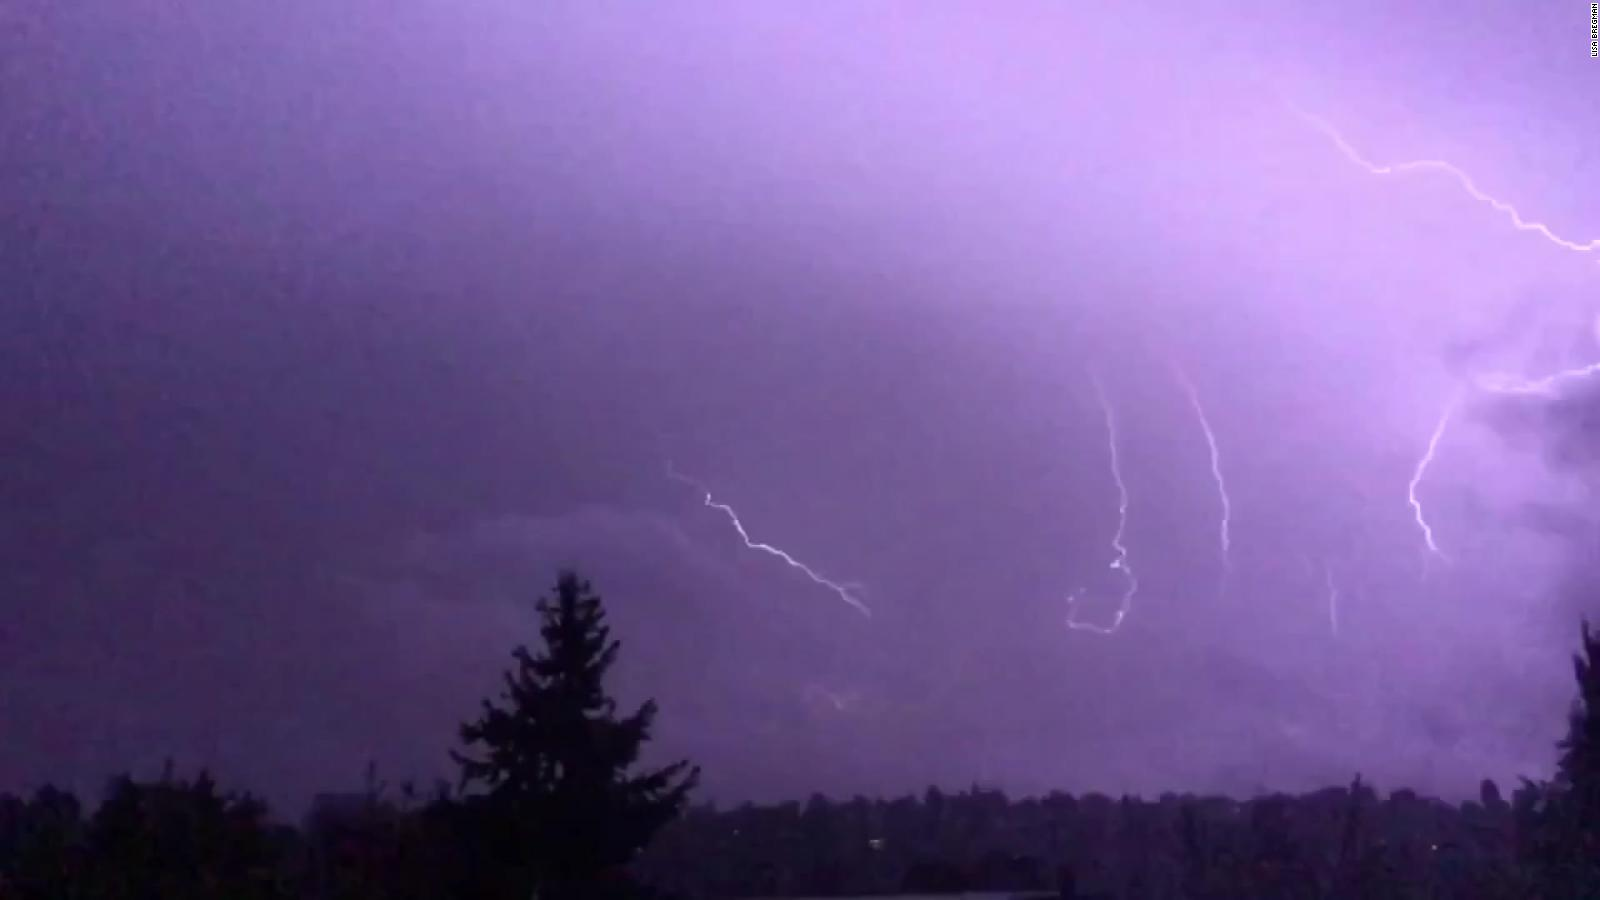 Seattle Sees More Than 1 000 Lighting Strikes In 3 Hours